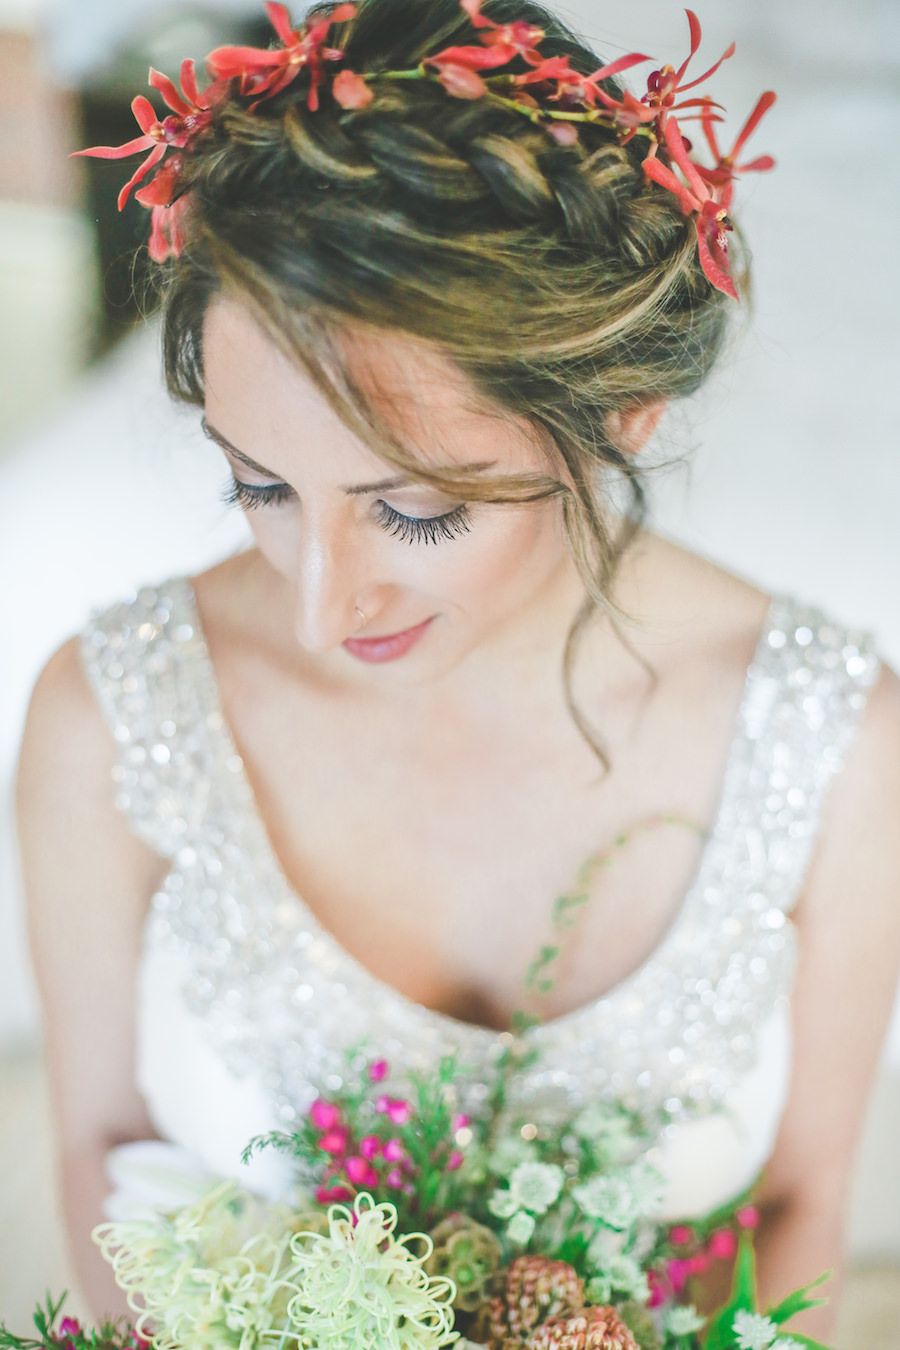 Bridal Hair and Makeup Wedding Detail Portrait with Red Flower Crown and Beaded, Anna Campbell Wedding Dress